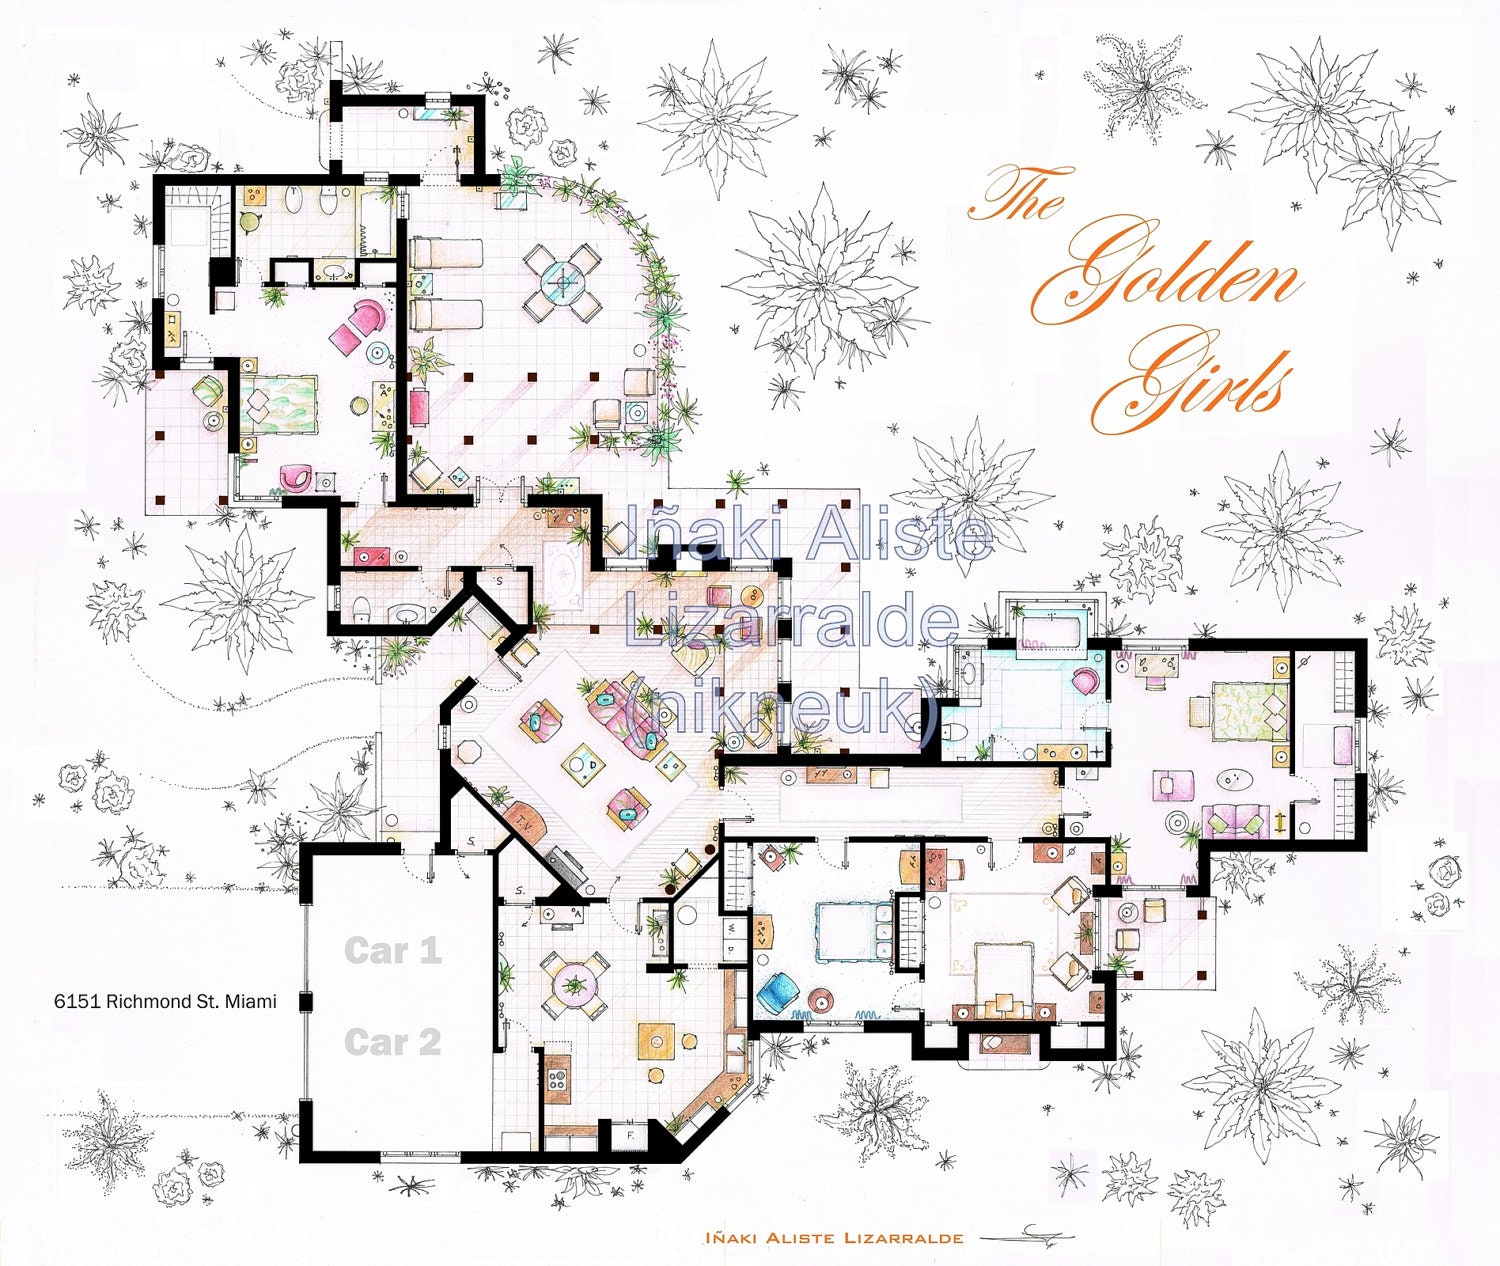 Floorplan of the house from the golden girls ampliar malvernweather Gallery